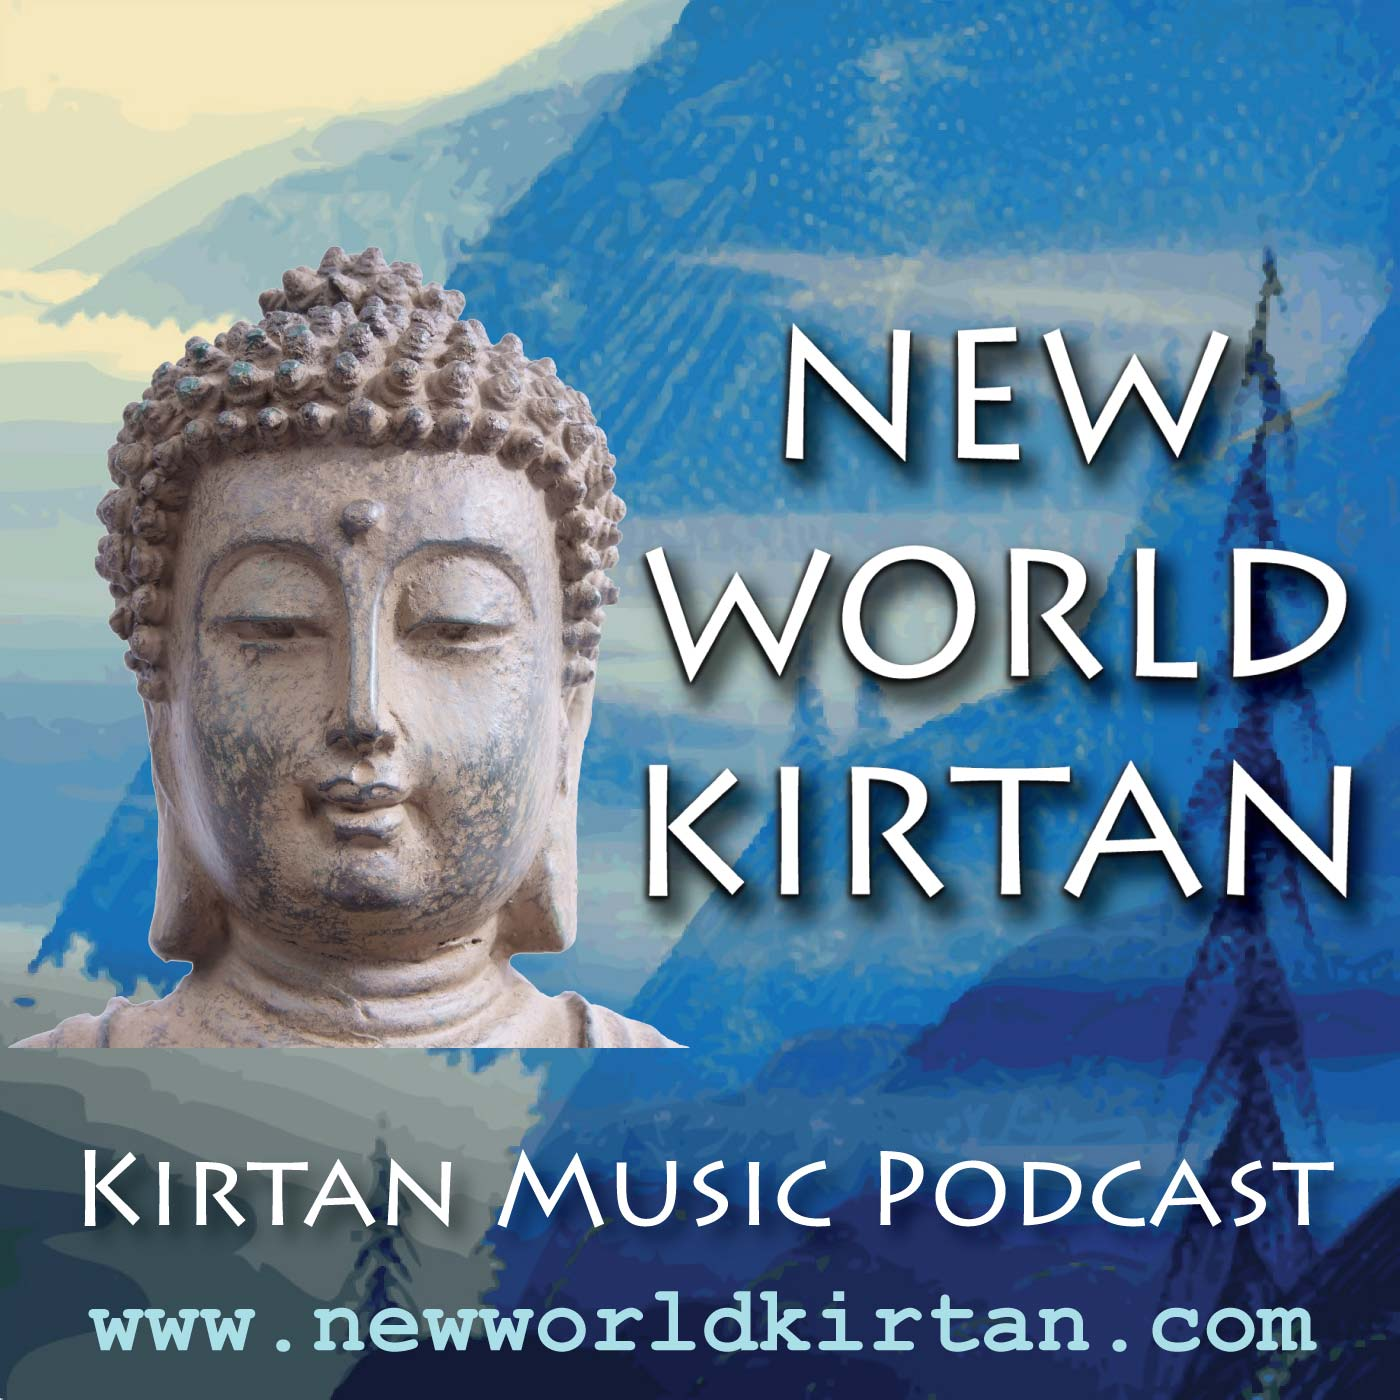 New World Kirtan